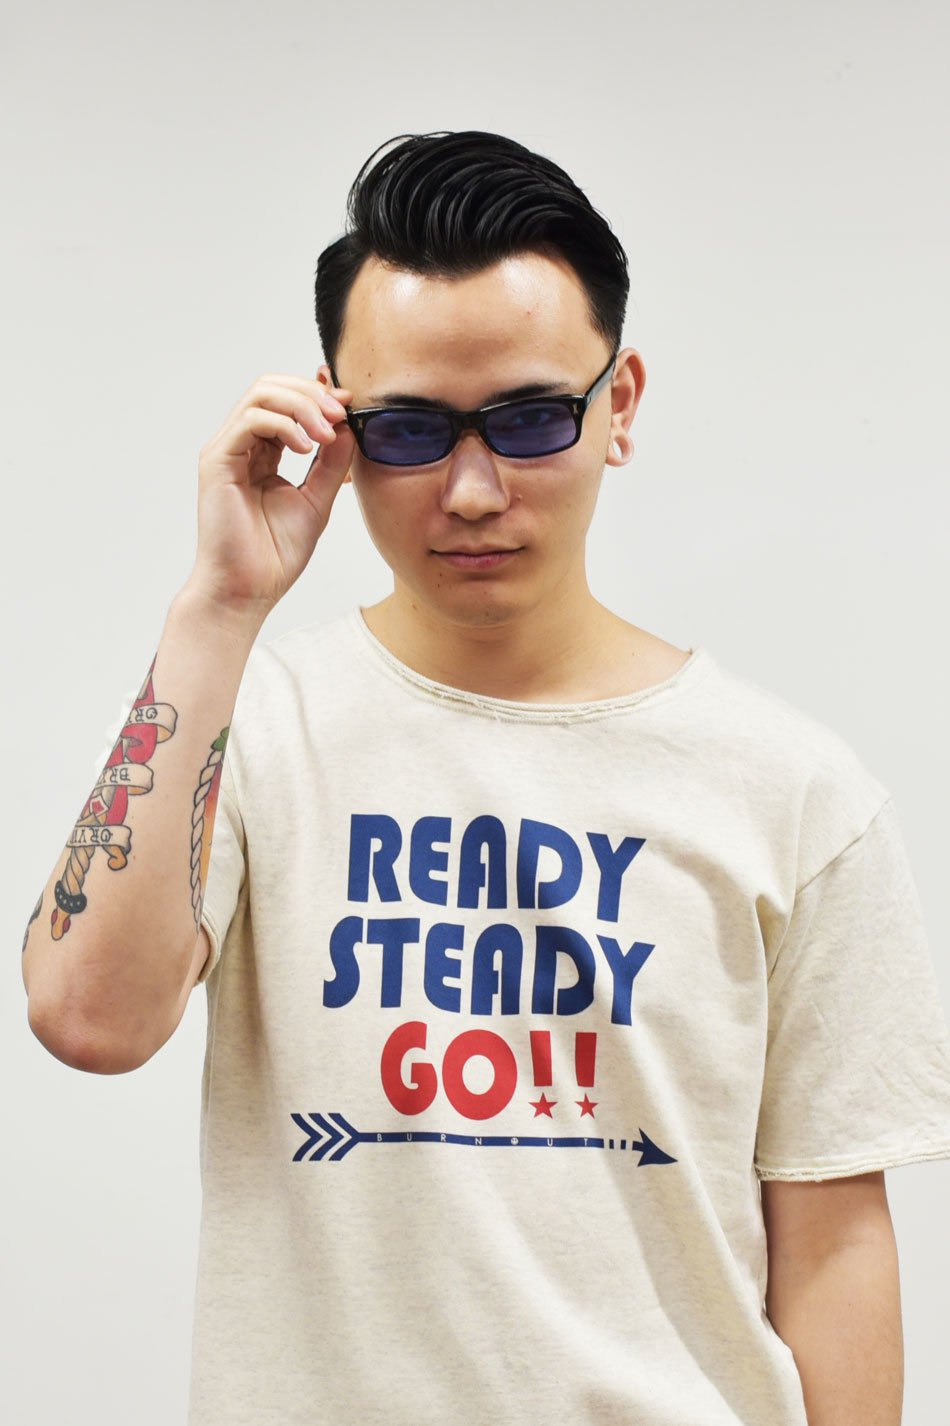 BURNOUT(バーンアウト )【READY STEADY GO !! 】ショートスリーブカットソー / オートミール<img class='new_mark_img2' src='https://img.shop-pro.jp/img/new/icons5.gif' style='border:none;display:inline;margin:0px;padding:0px;width:auto;' />